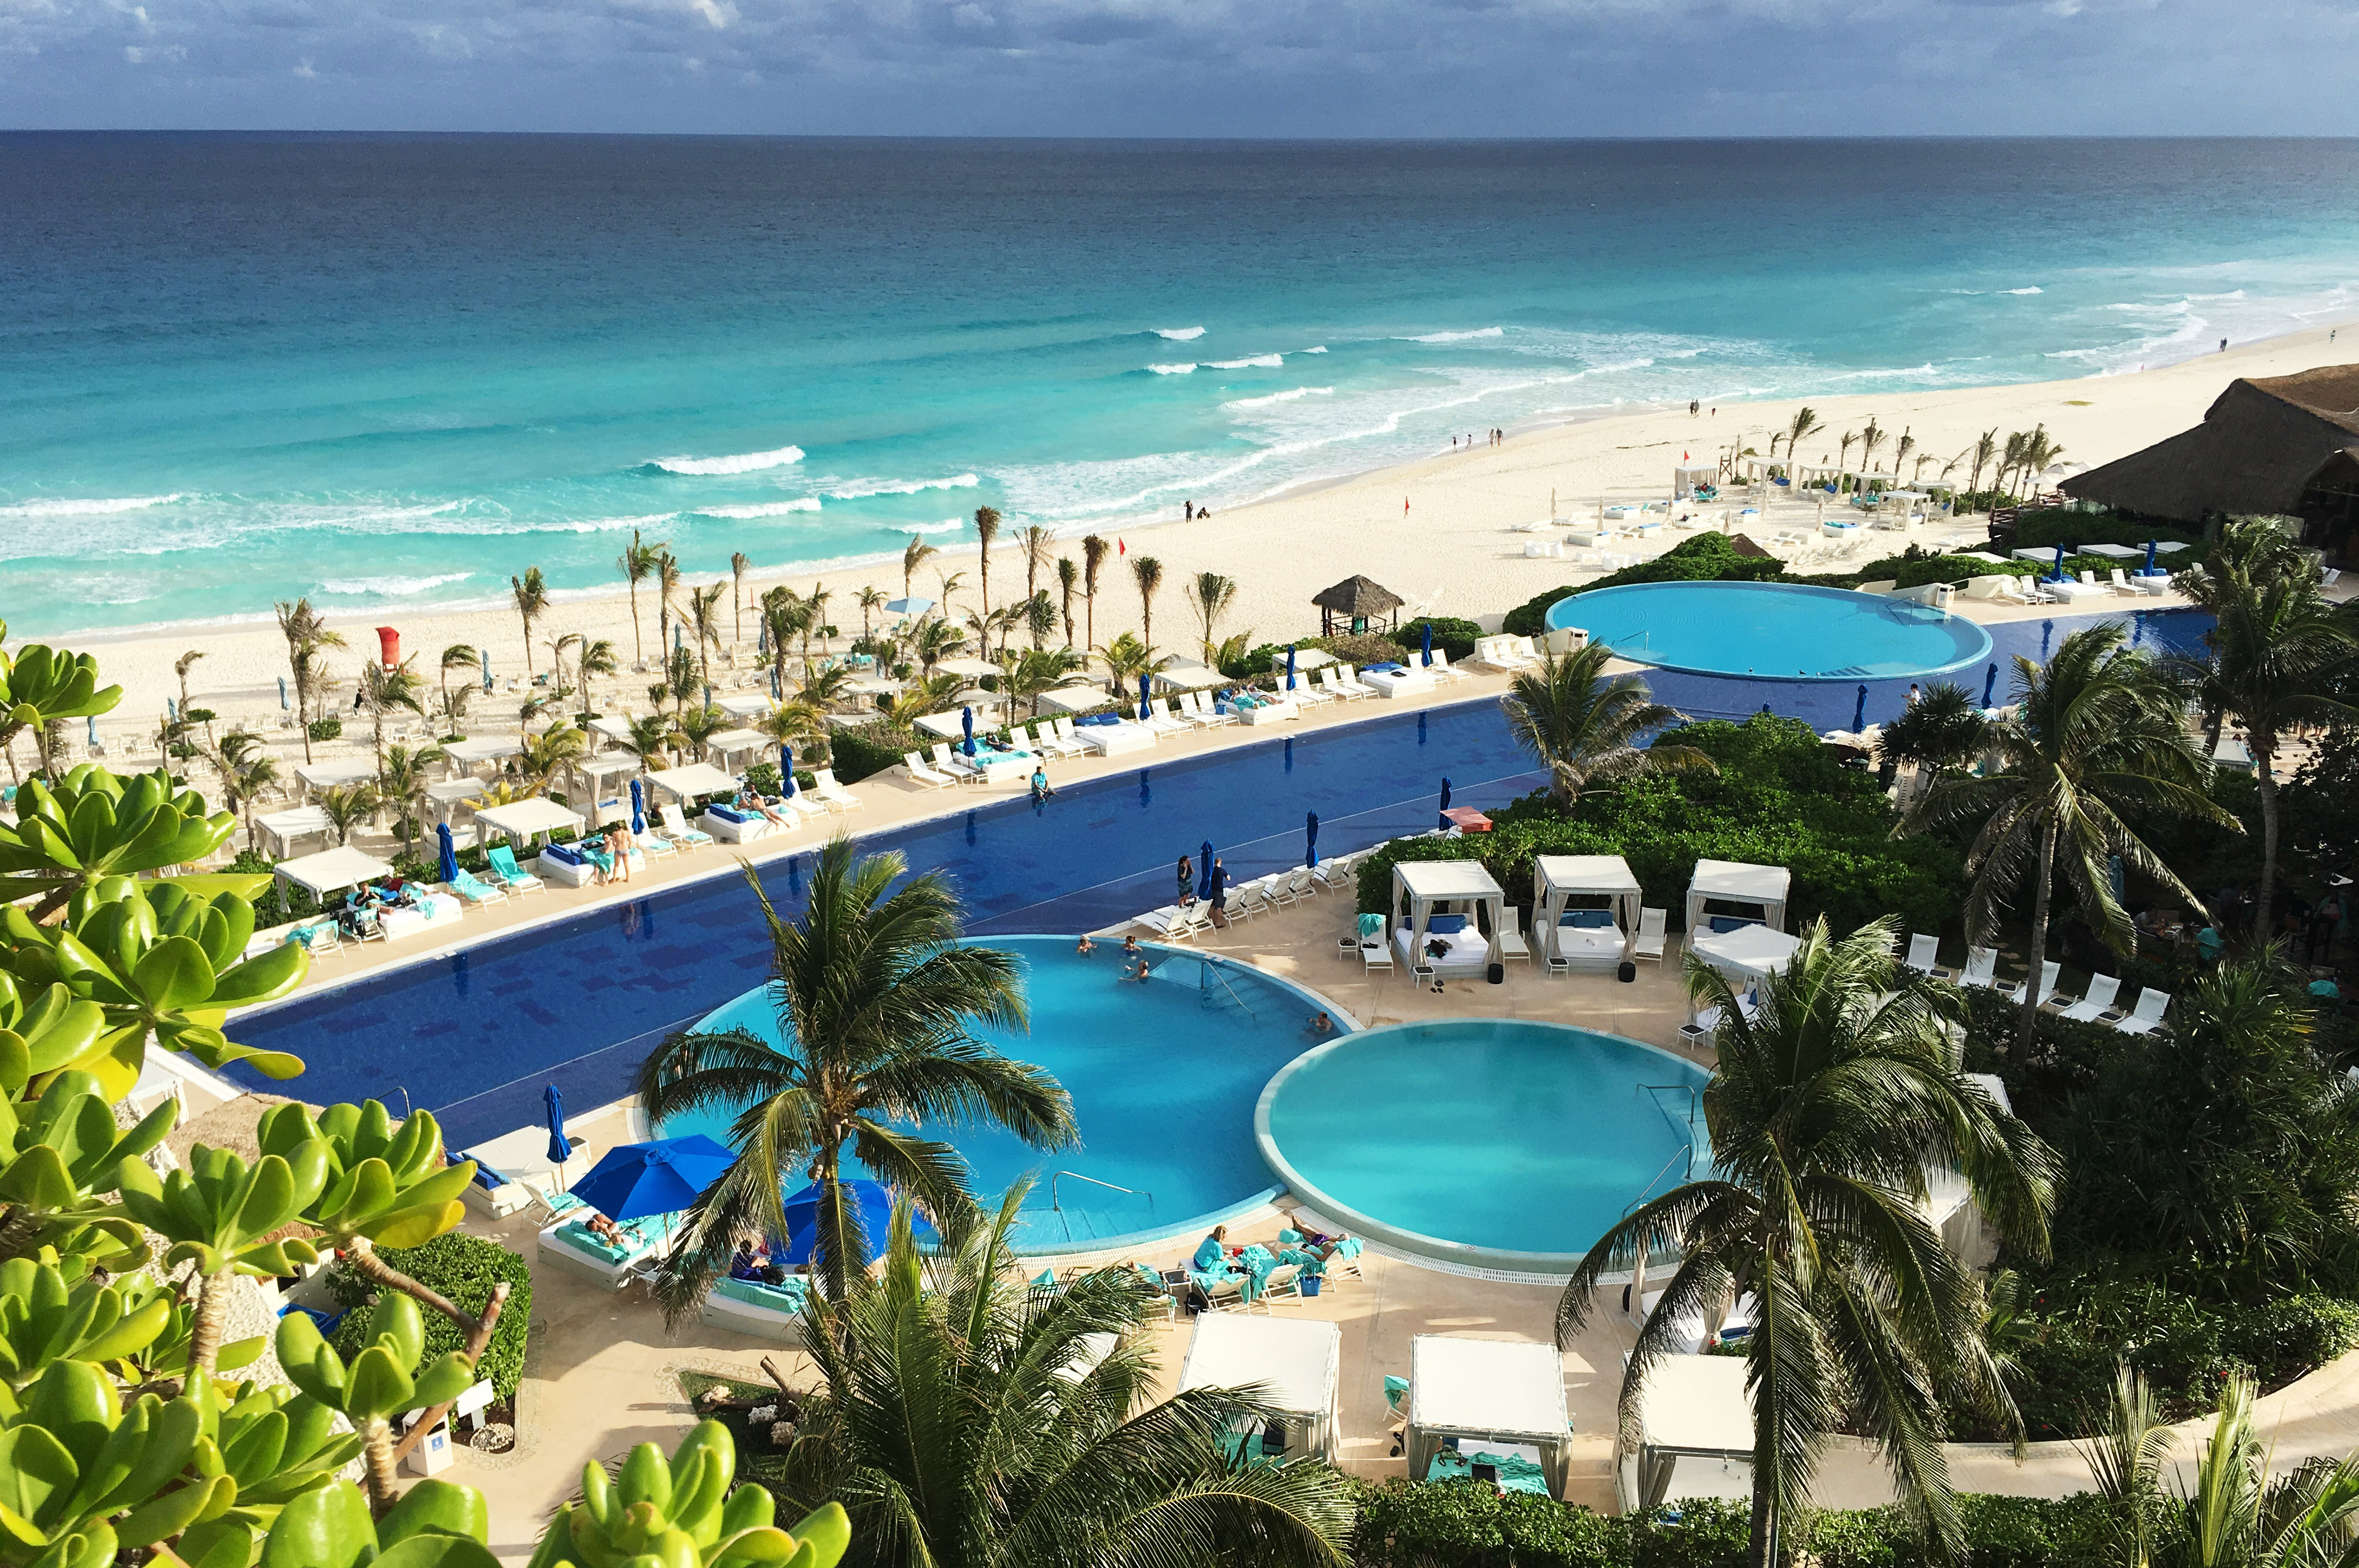 The Hotel Is Only An Hours Drive North From Its Sister Live Aqua Boutique Playa Del Carmen